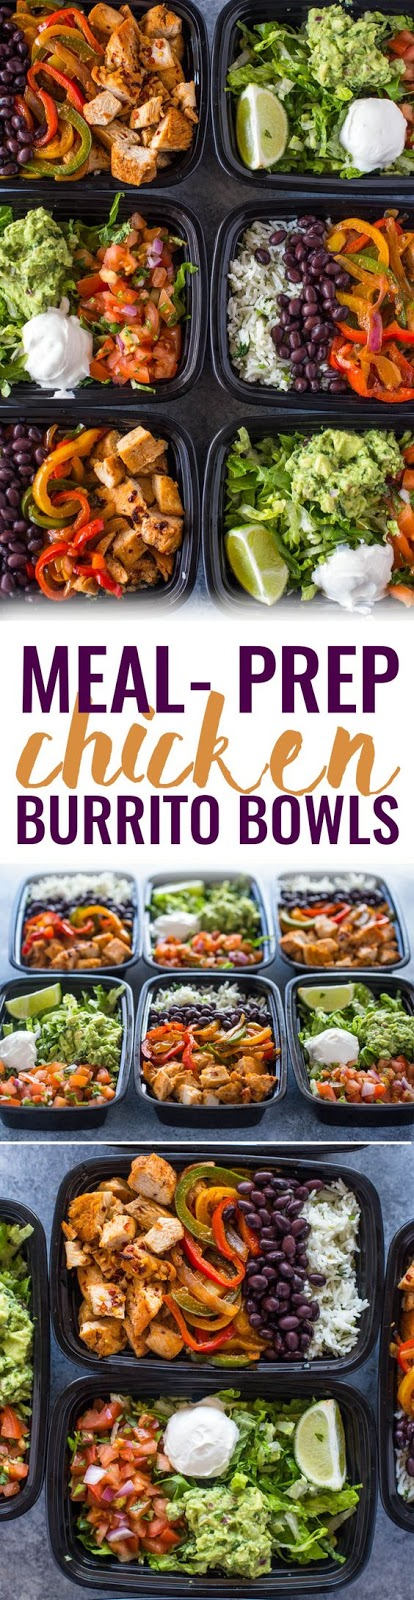 A week's worth of lunch made in just 1 hour. This time-saving meal-prep chicken burrito bowls recipe will help you get healthy lunch on the table at work, school or home quickly without sacrificing